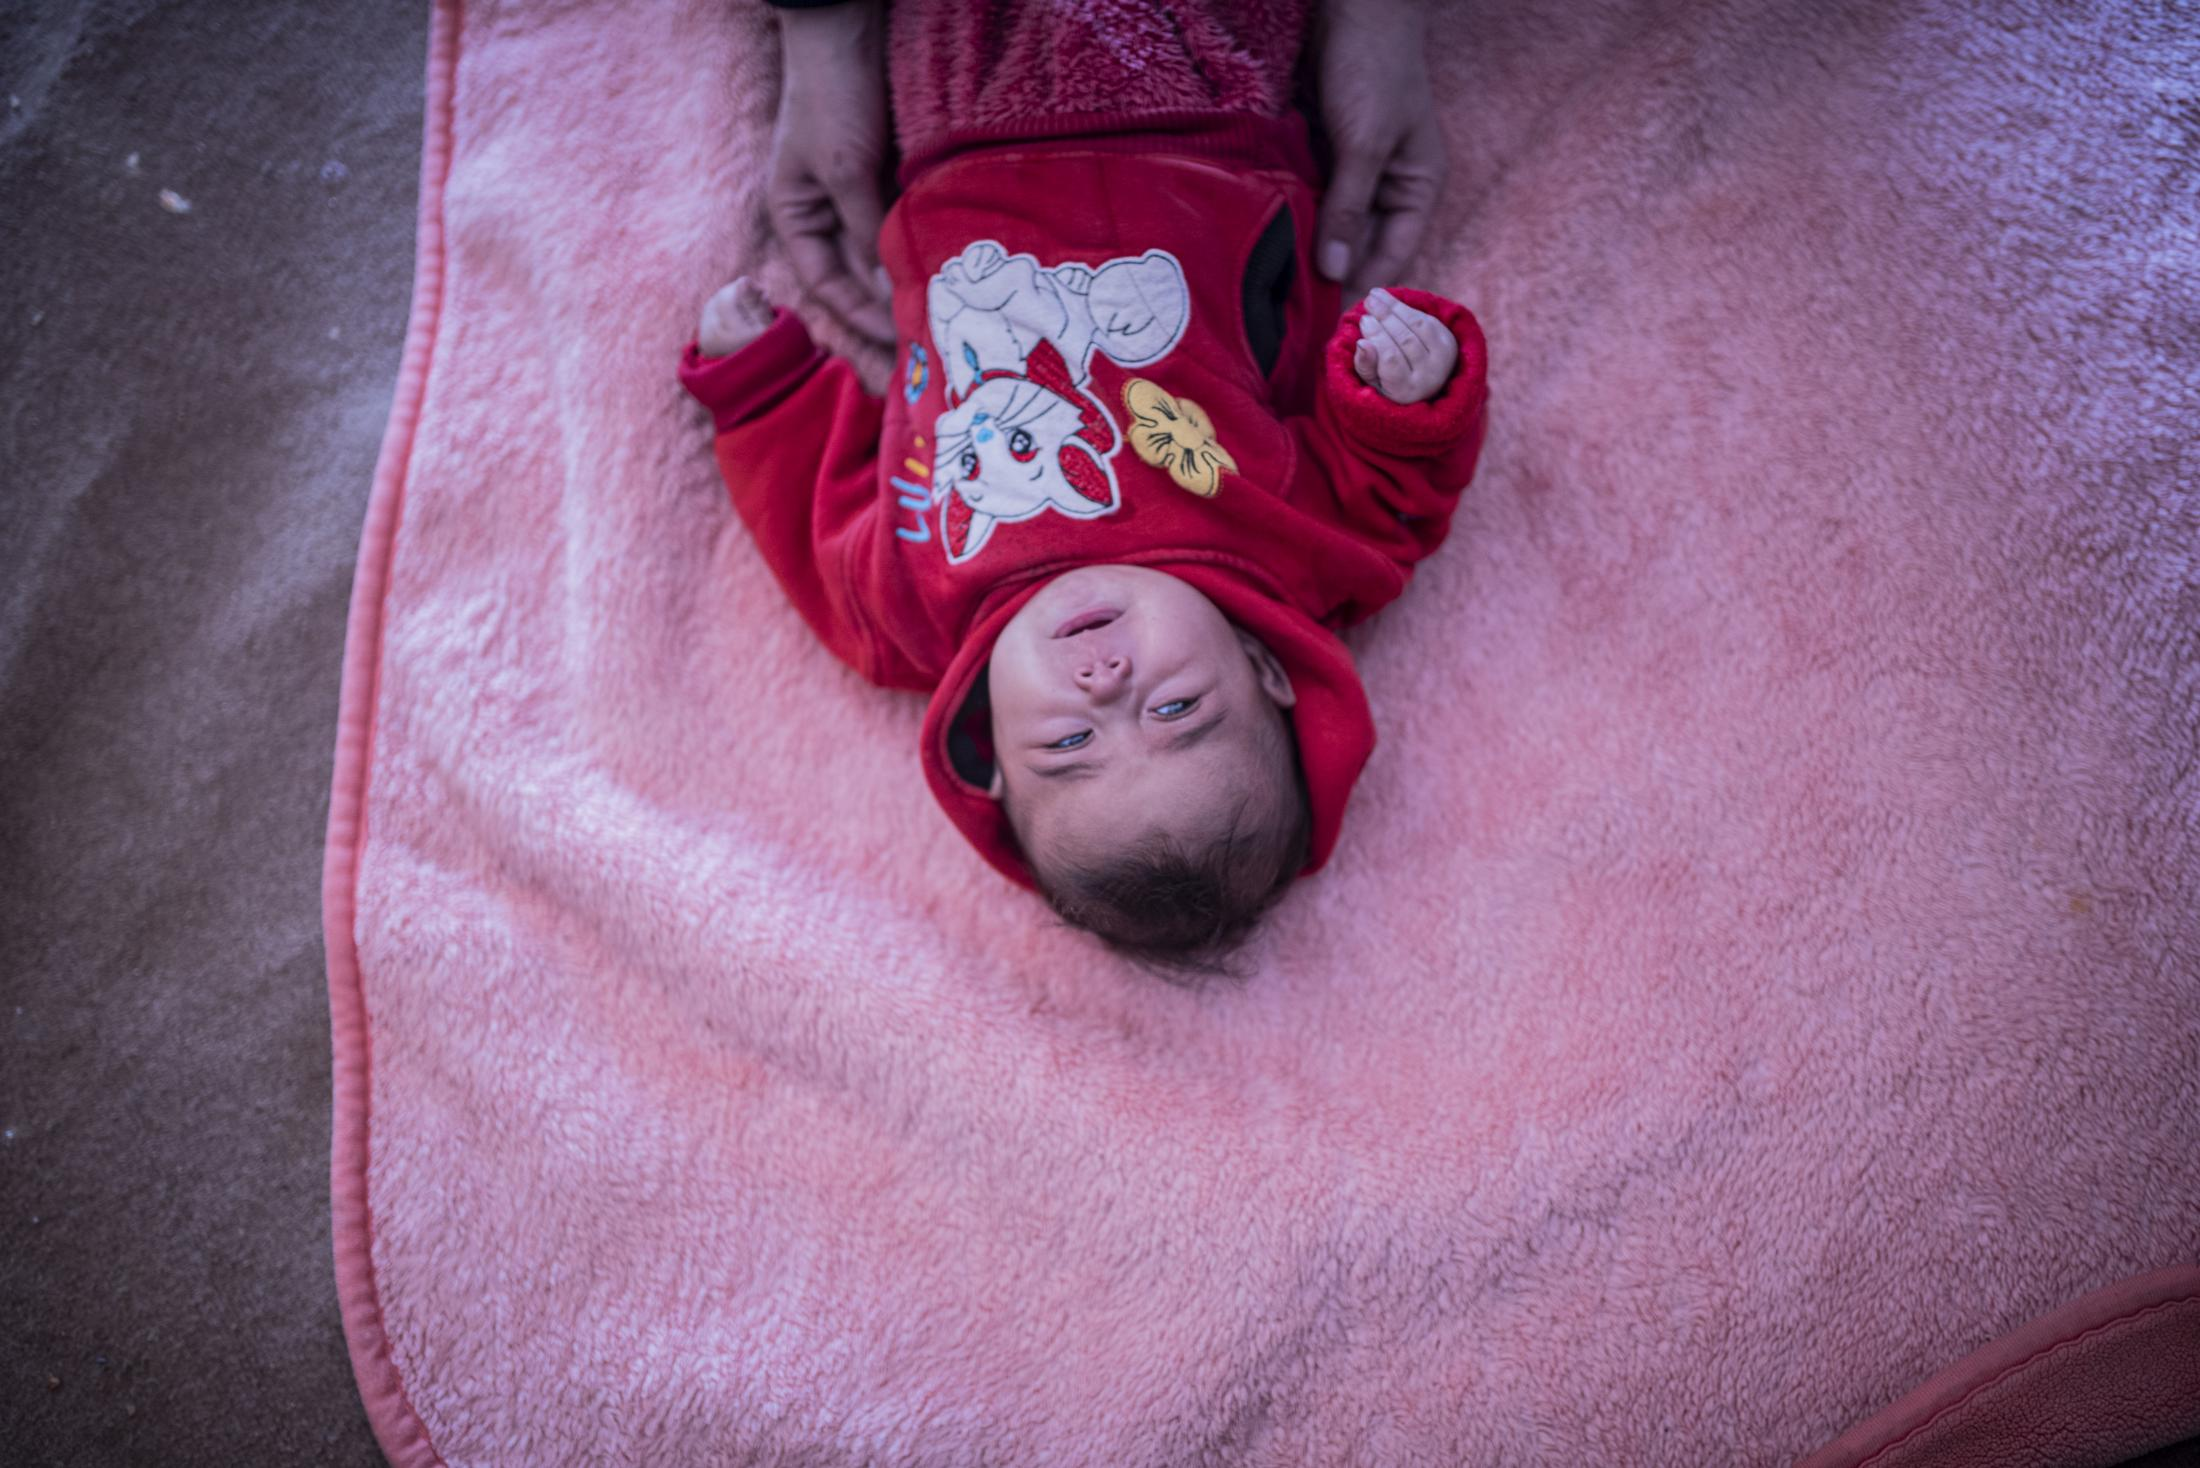 A newborn in Washokani refugee camp crying on the floor where her father has put a blanket to use it as a bed. After the withdrawal of US troops from northern Syria in October 2019, Turkey launched an offensive against the predominantly Kurdish areas in the northeast of the country along Islamist forces. Calls for war crimes investigations into the conduct of Ankara-backed militias are mounting ever since. (Andoni Lubaki / Euskal Fondoa)